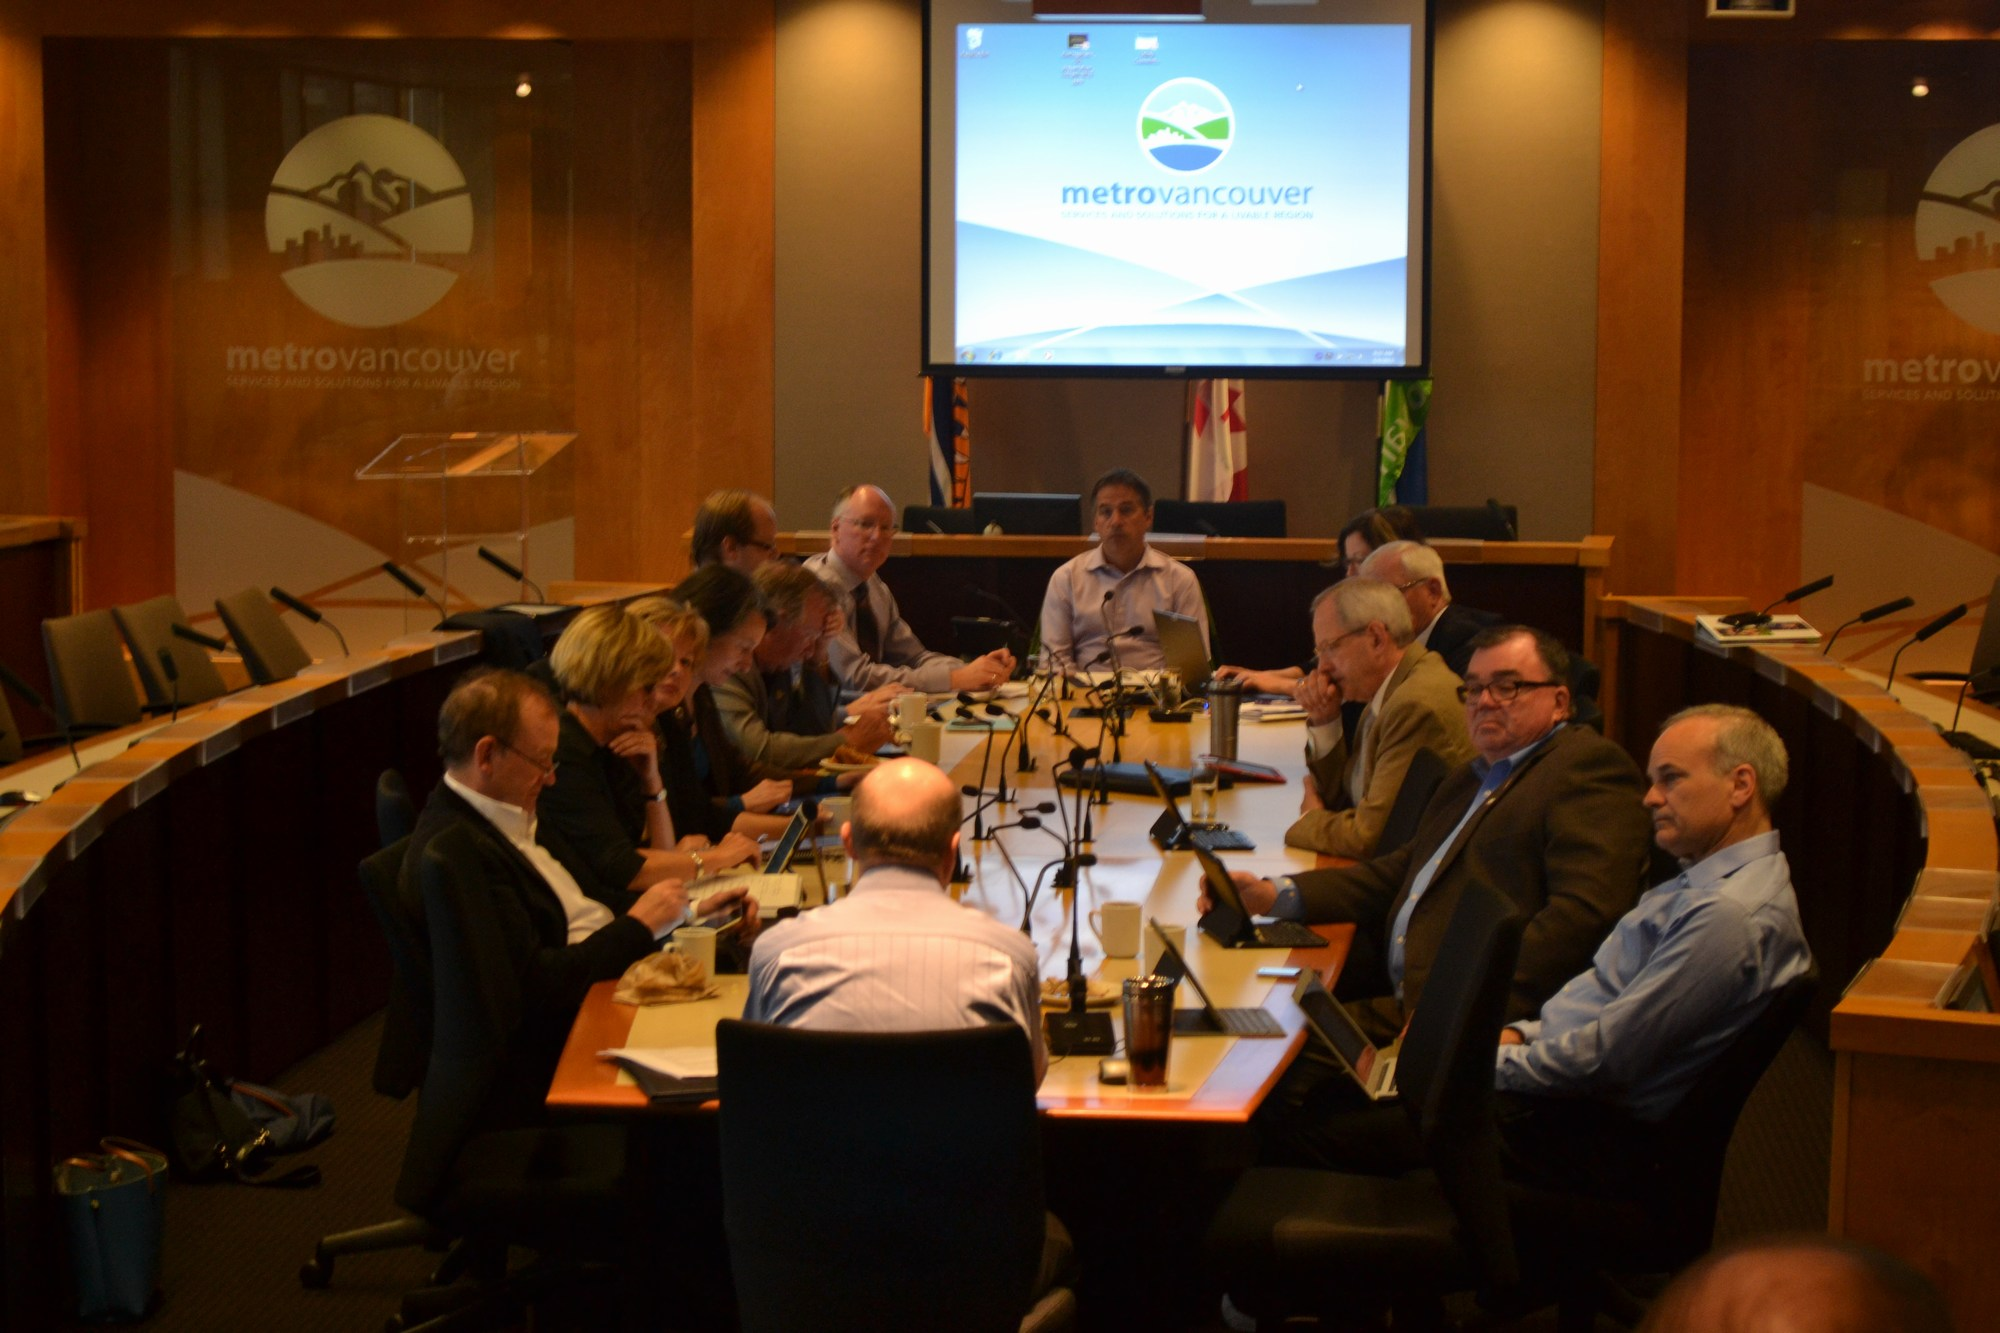 Metro Vancouver Utilties Committee. Chaired by Mayor Darrell Mussatto (City of North Vancouver)